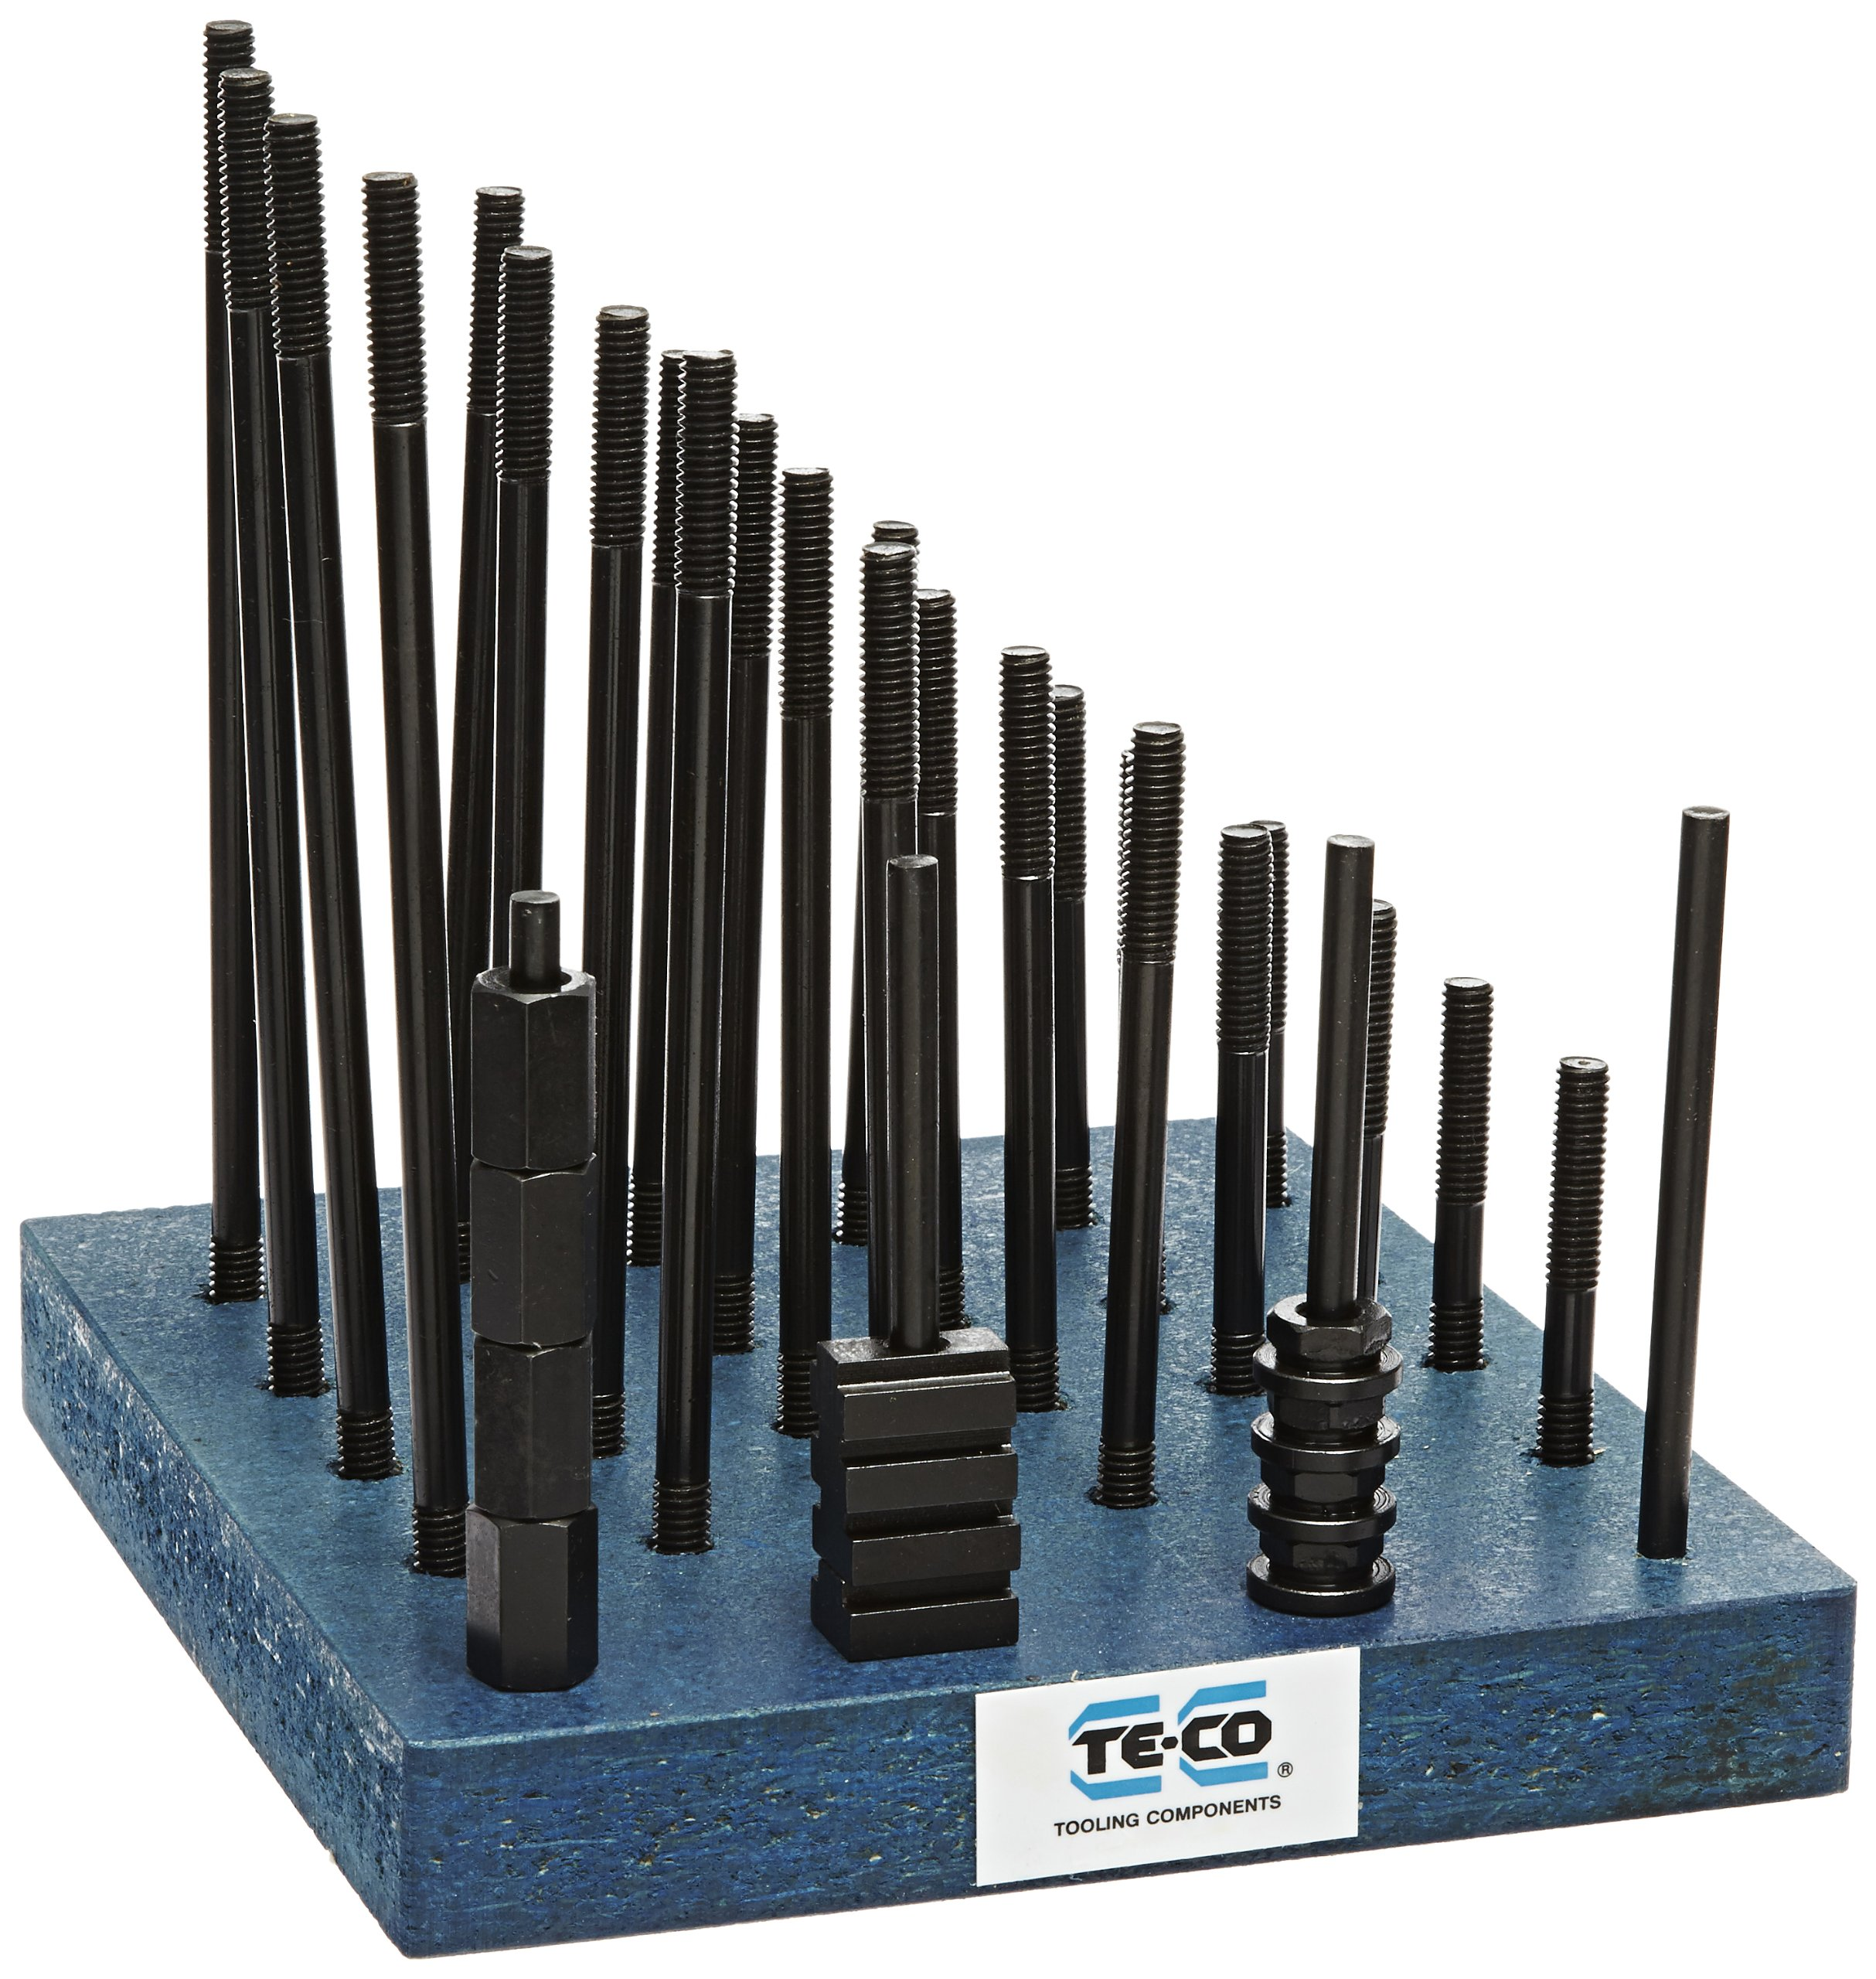 Te-Co 20601 38 Piece T-Nut and Stud Kit, 5/16''-18 Stud x 3/8'' Table T-Slot